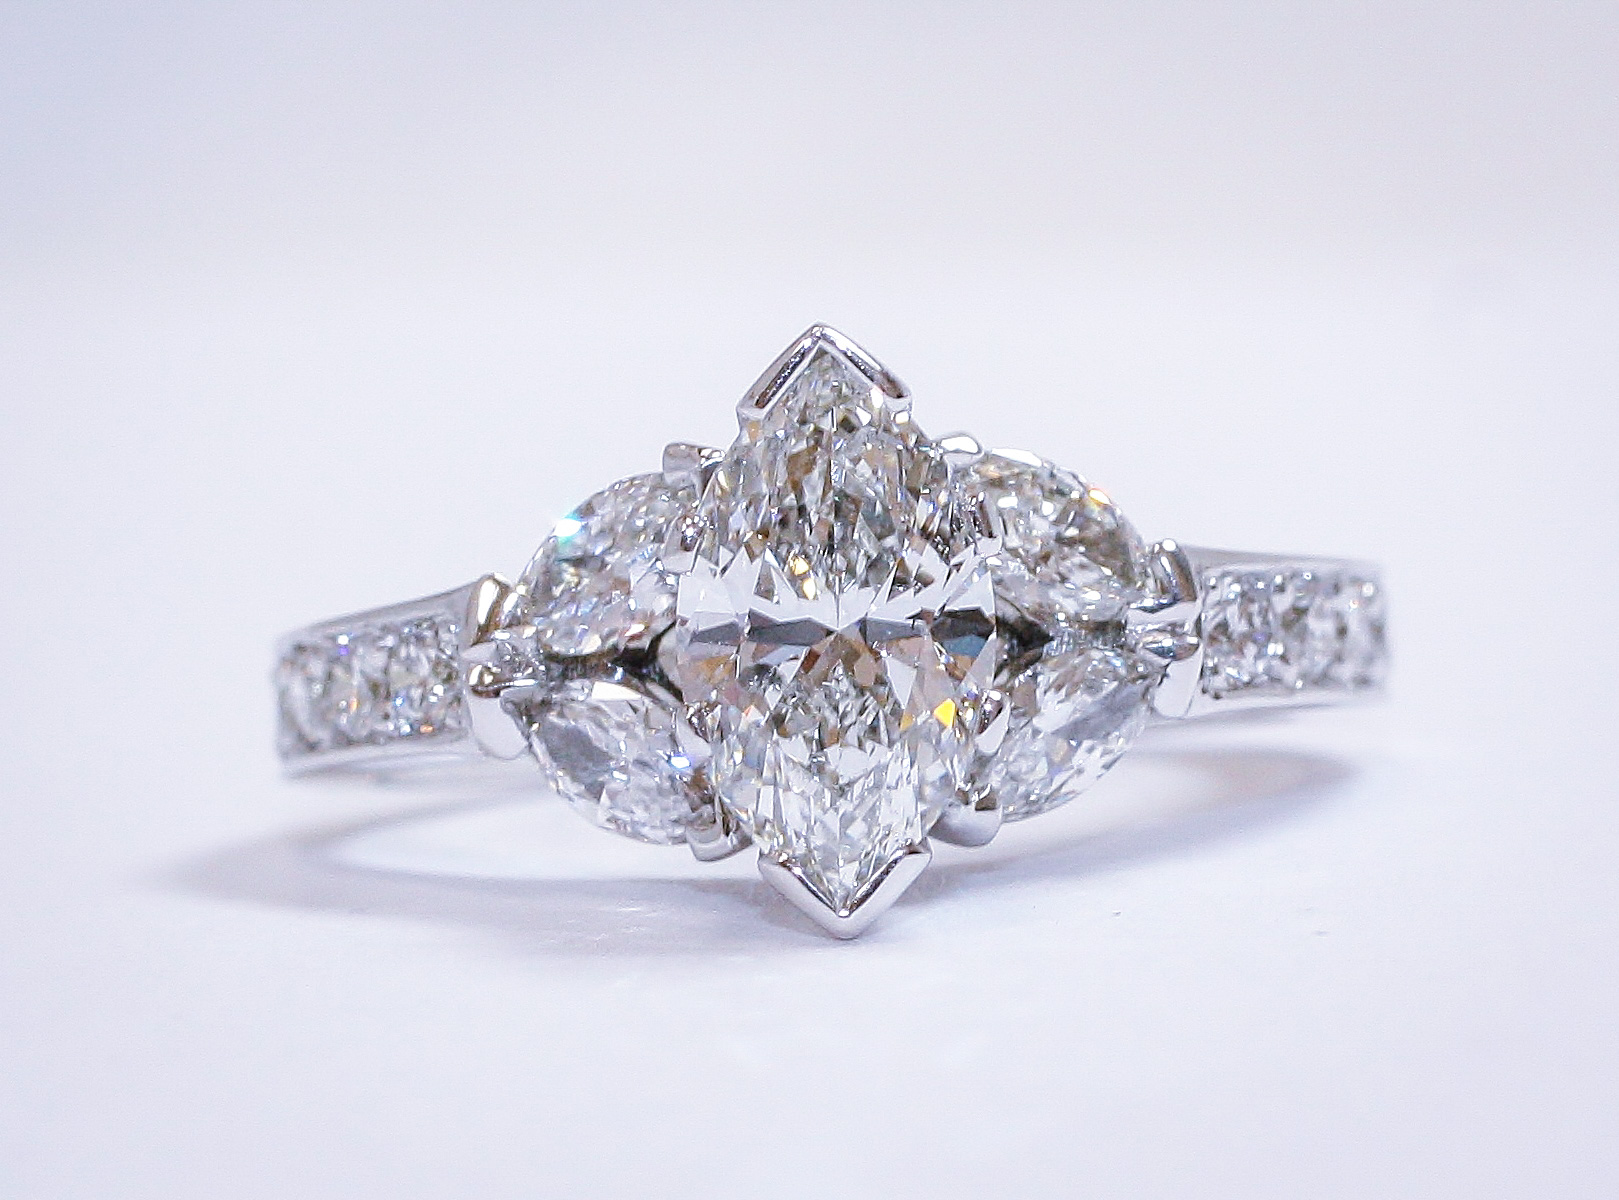 Sell_Vintage_Marquis_Diamond_Rings